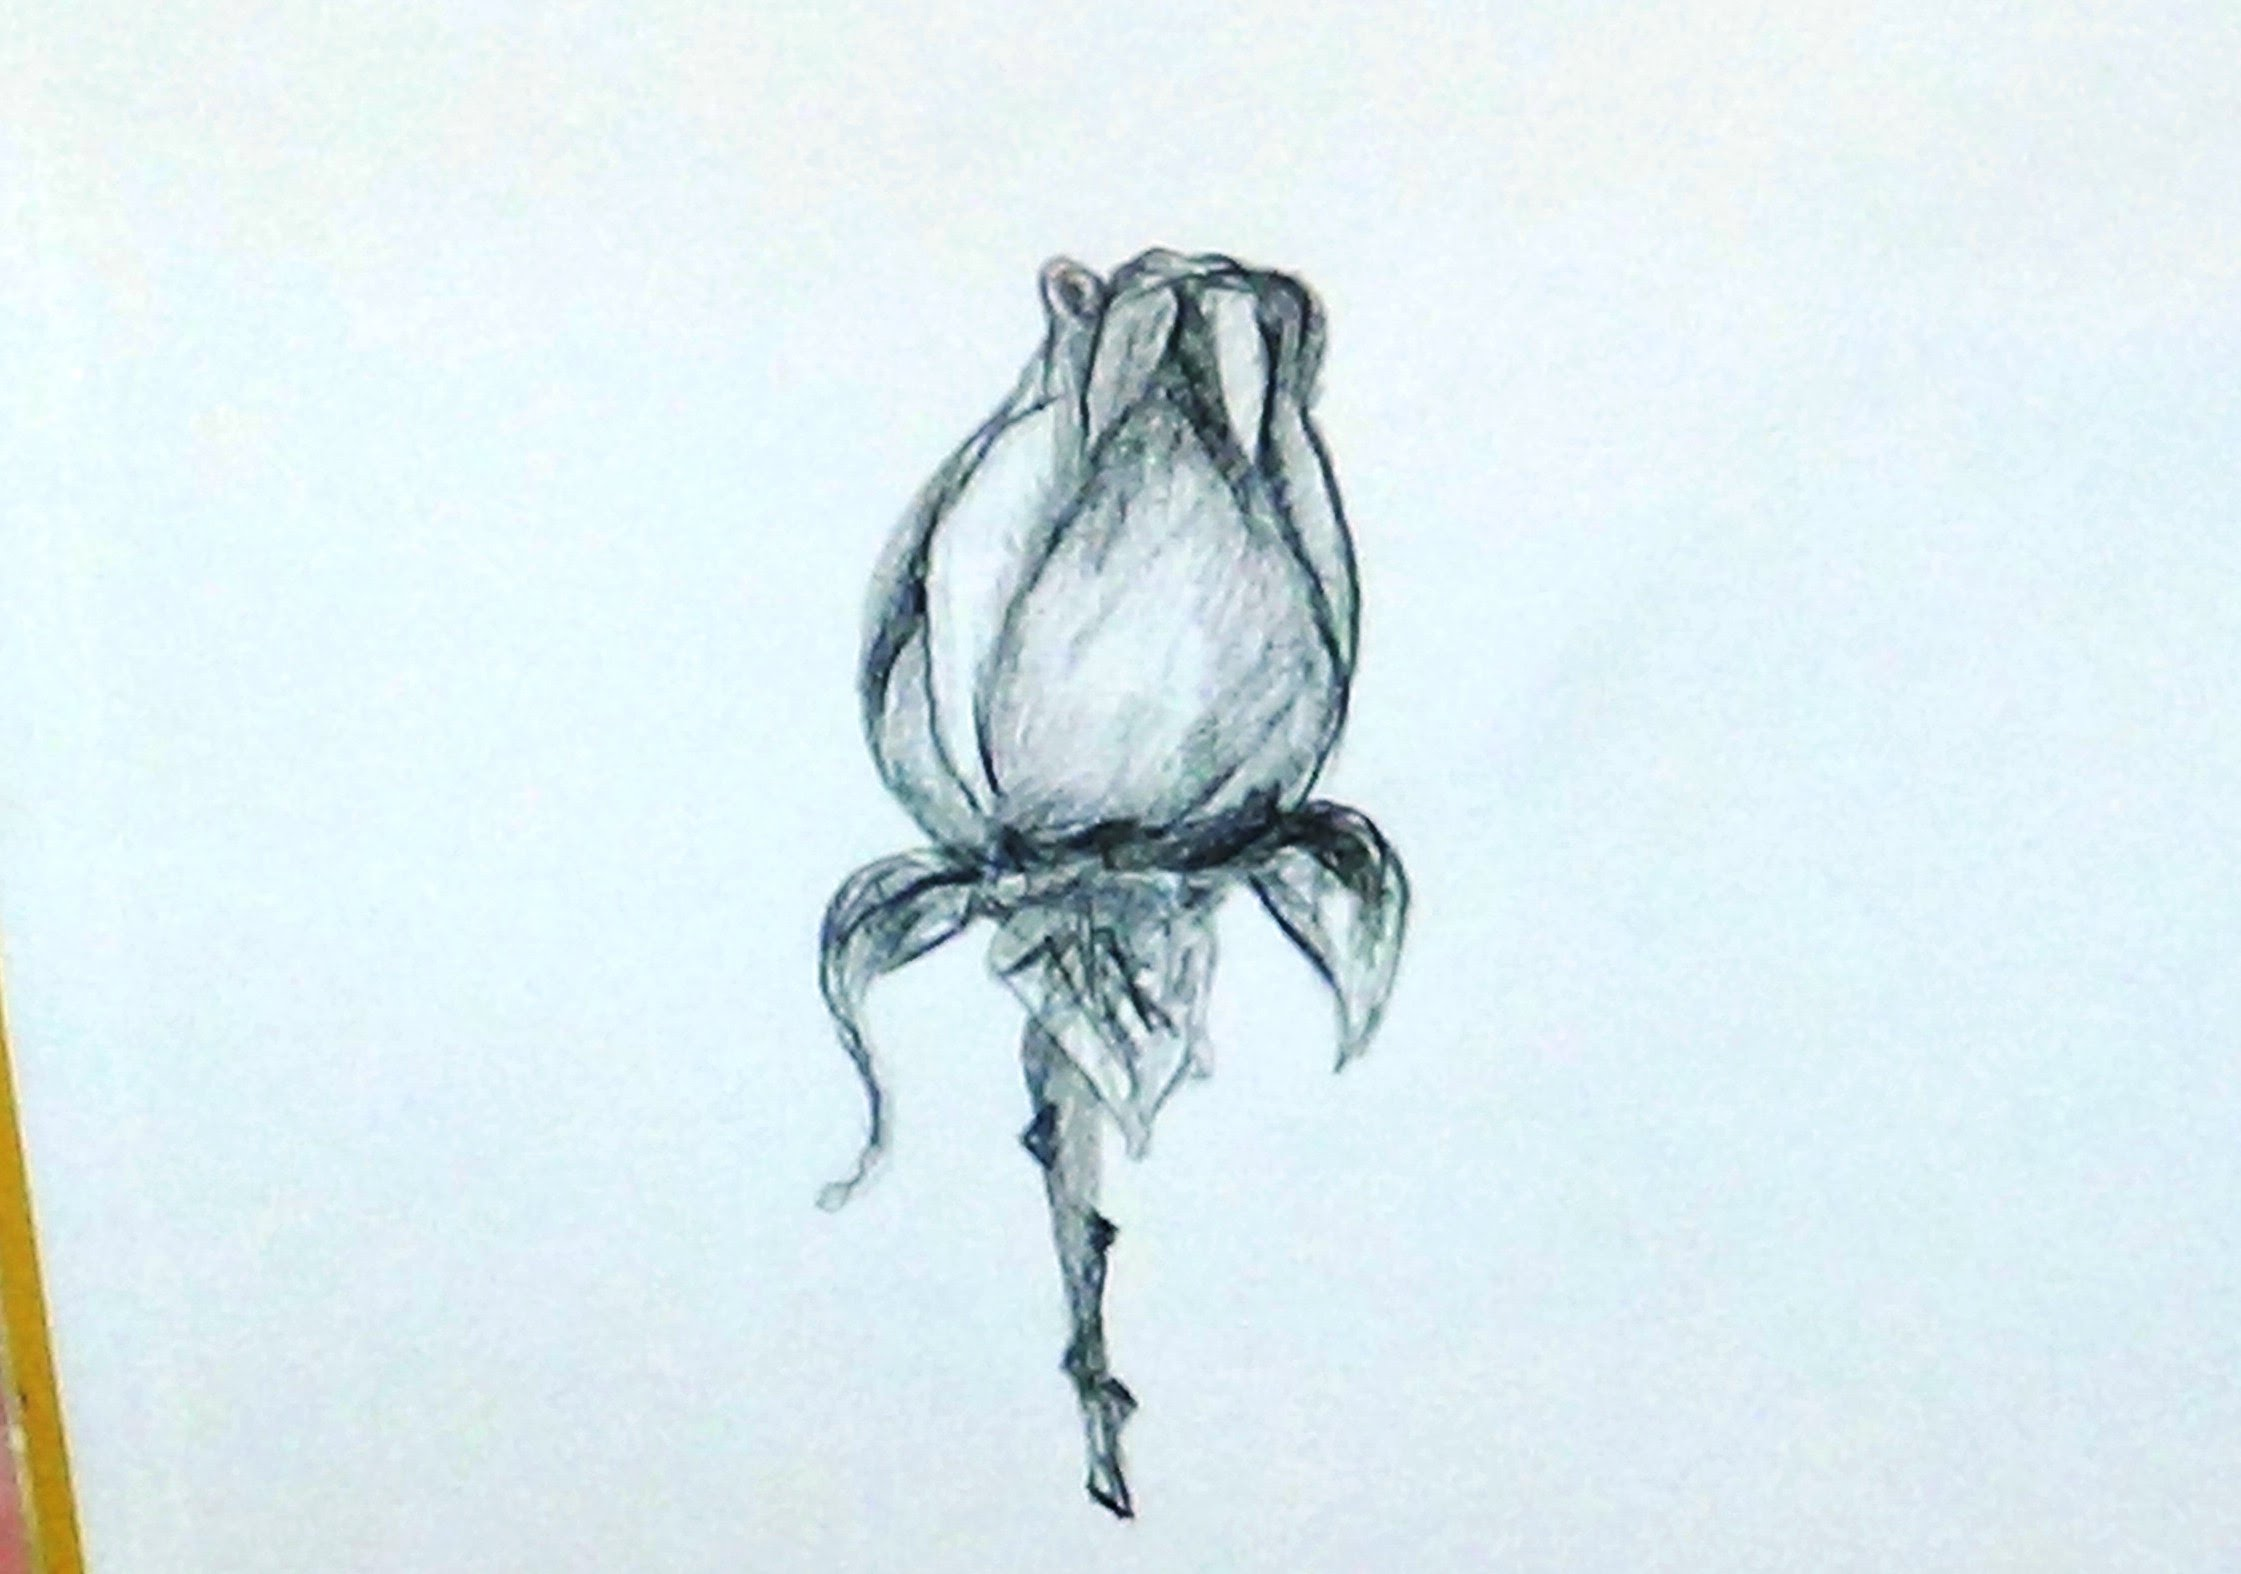 2241x1574 How To Draw A Rose Bud With Stem For Beginners